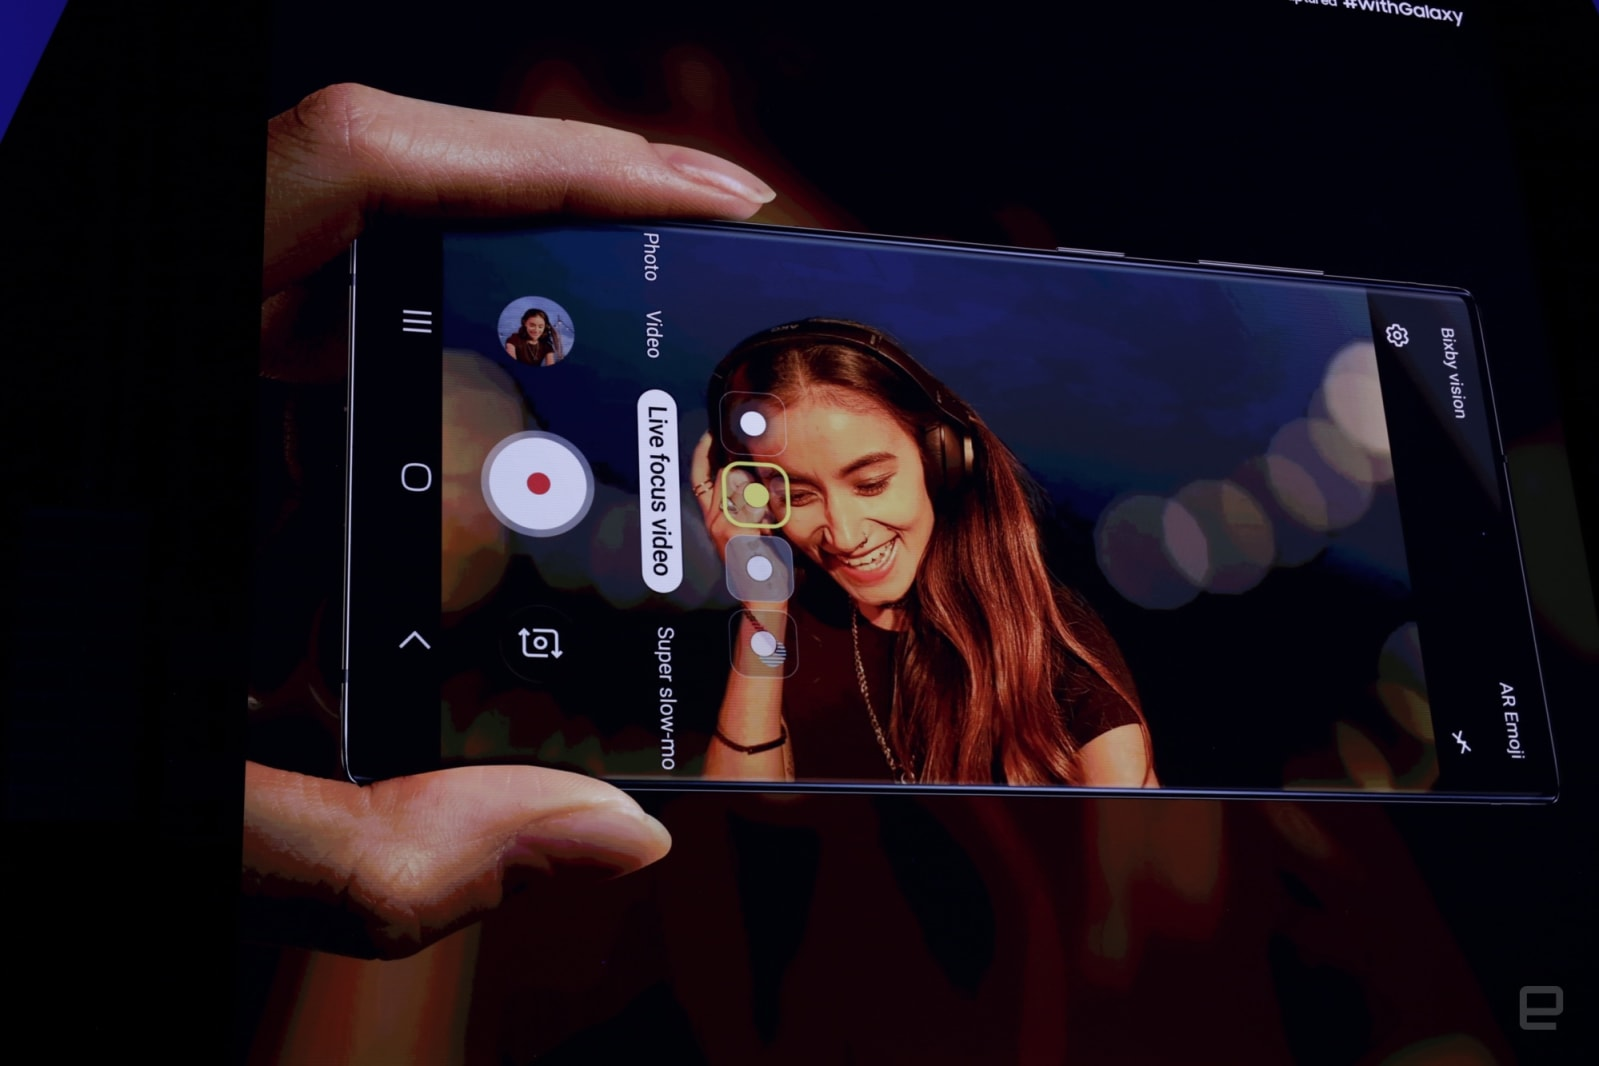 The Note 10s camera can can 'zoom-in' on sounds